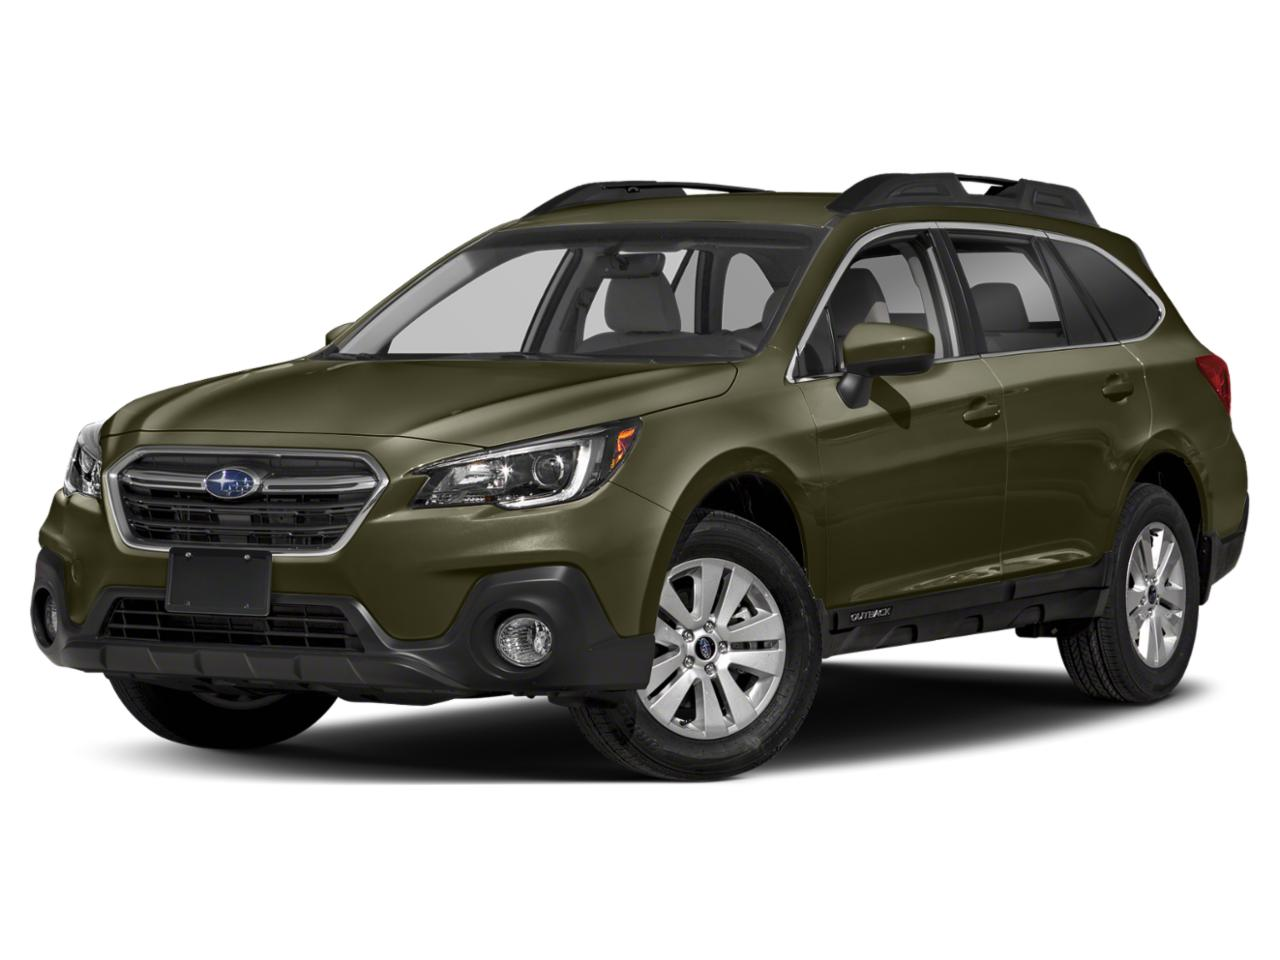 2018 Subaru Outback Vehicle Photo in Spokane, WA 99207